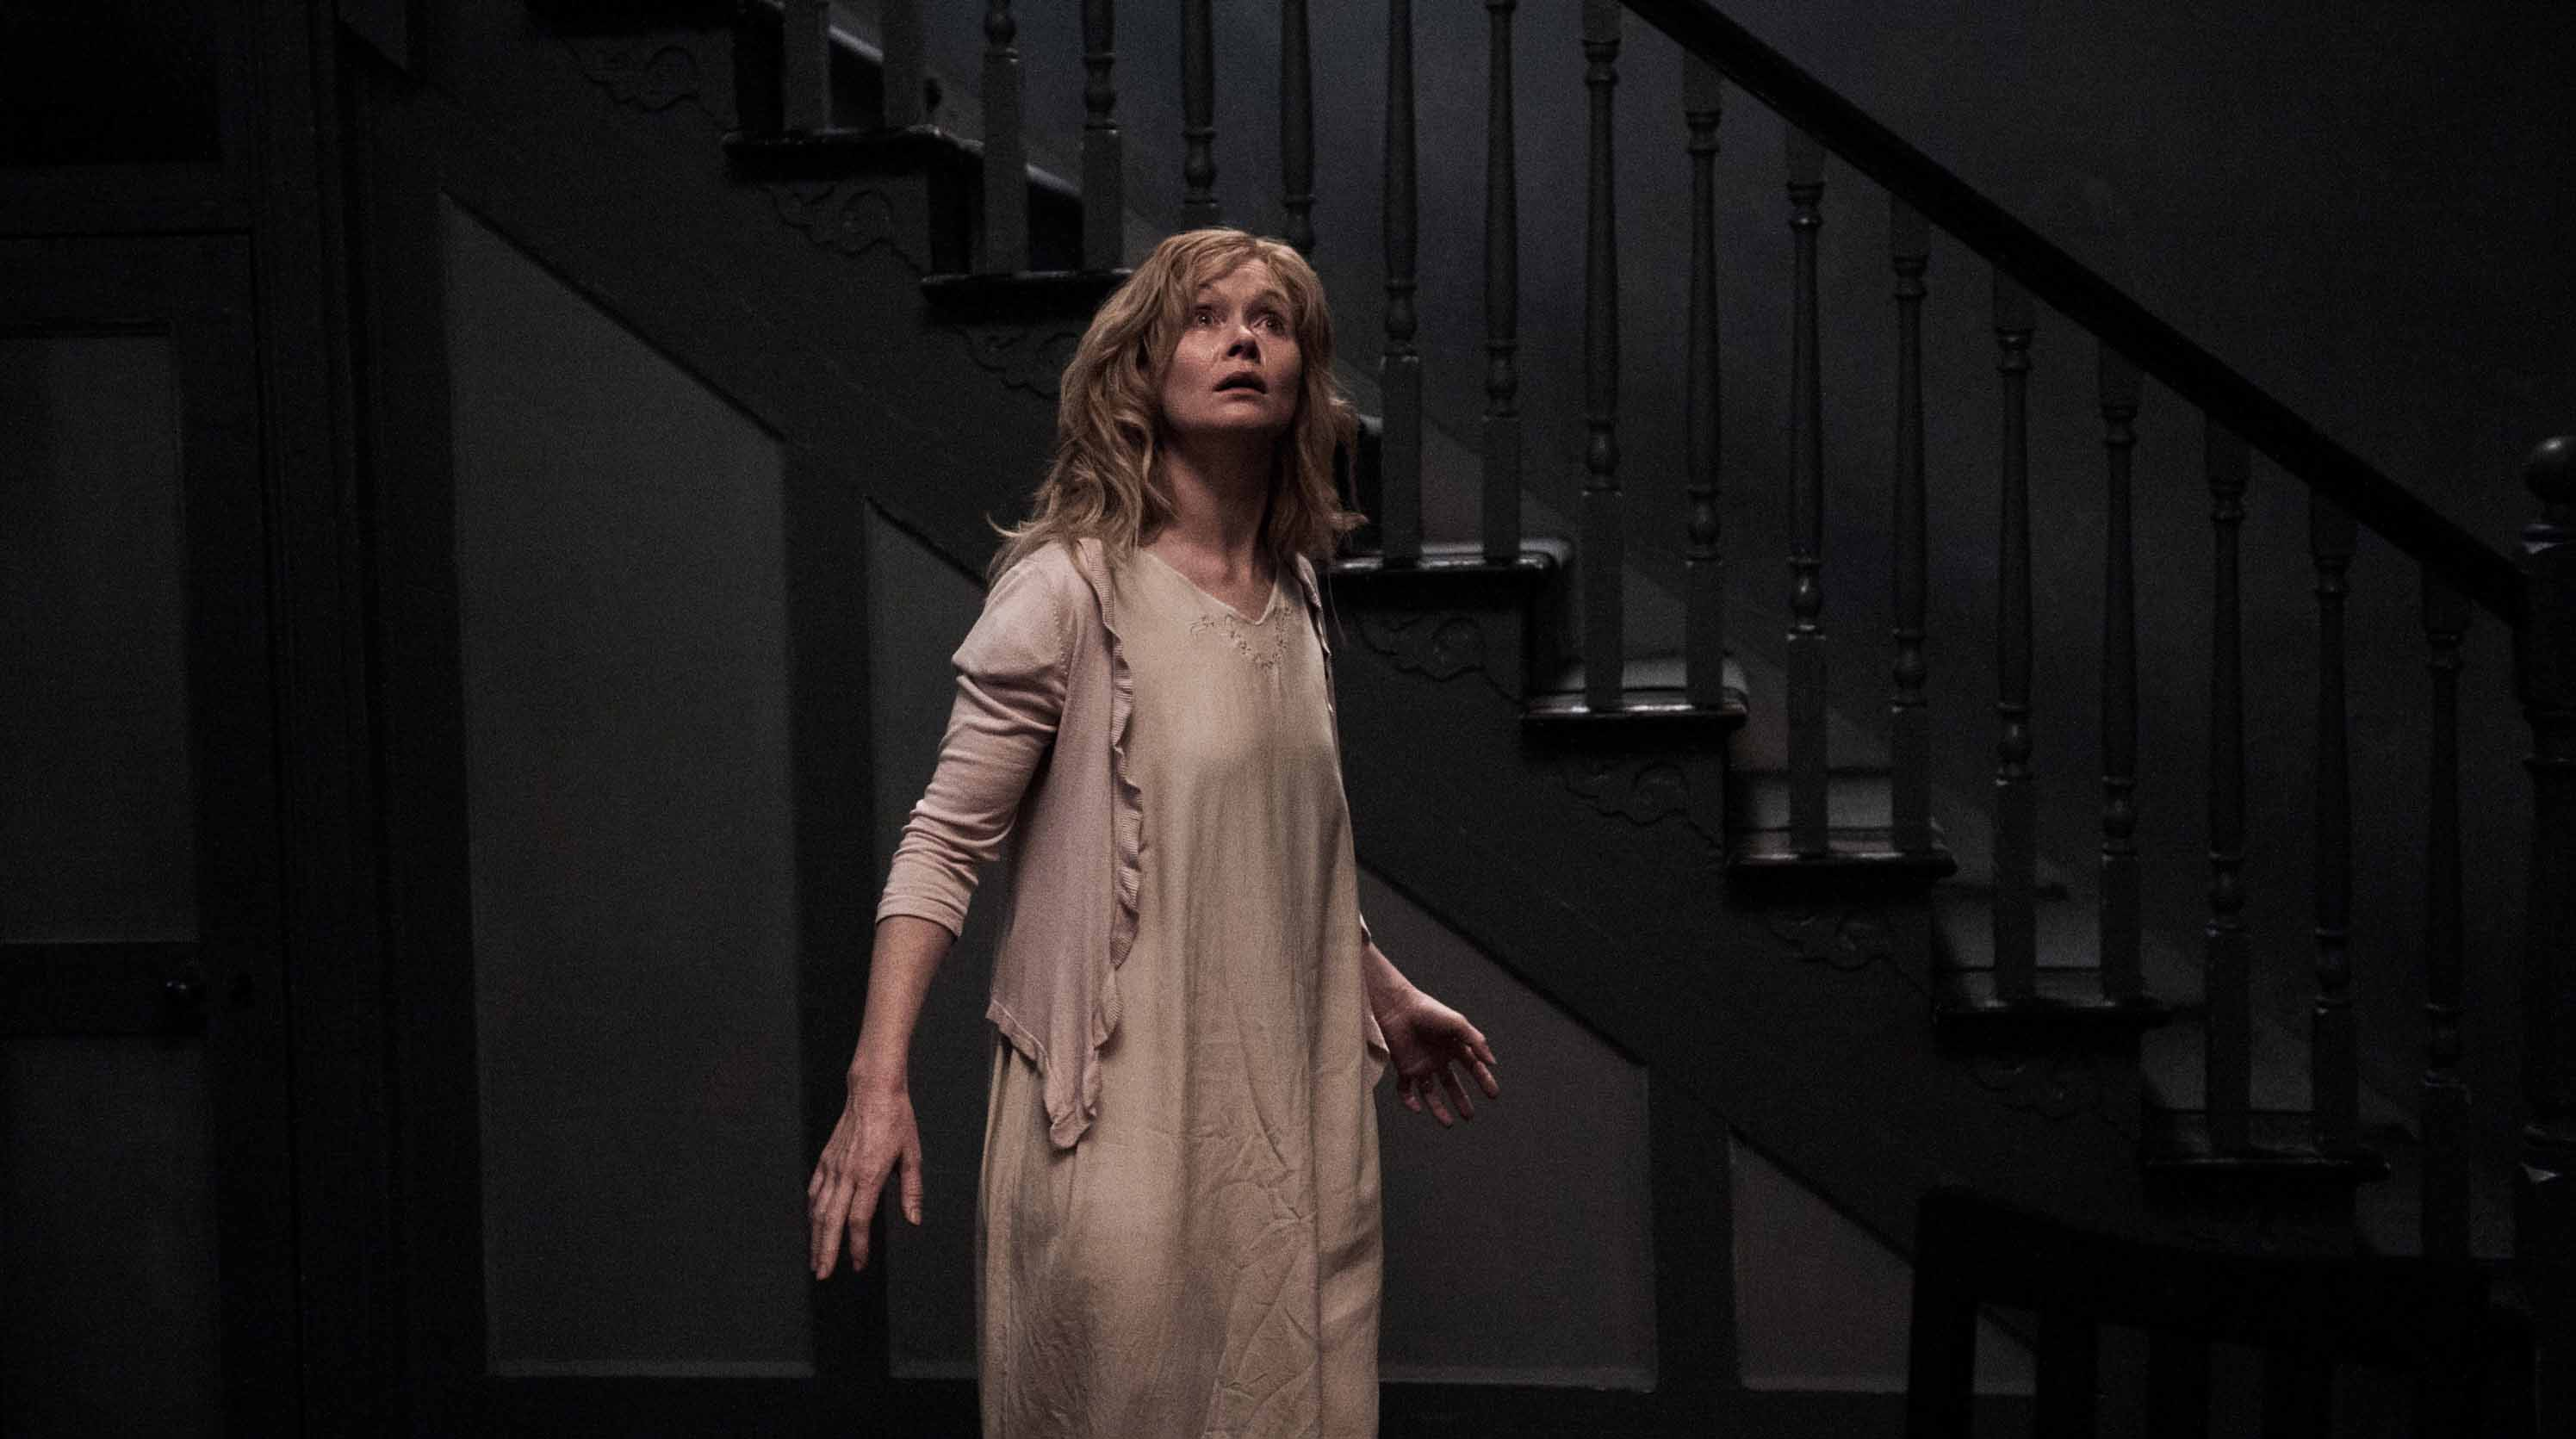 The Babadook Backgrounds